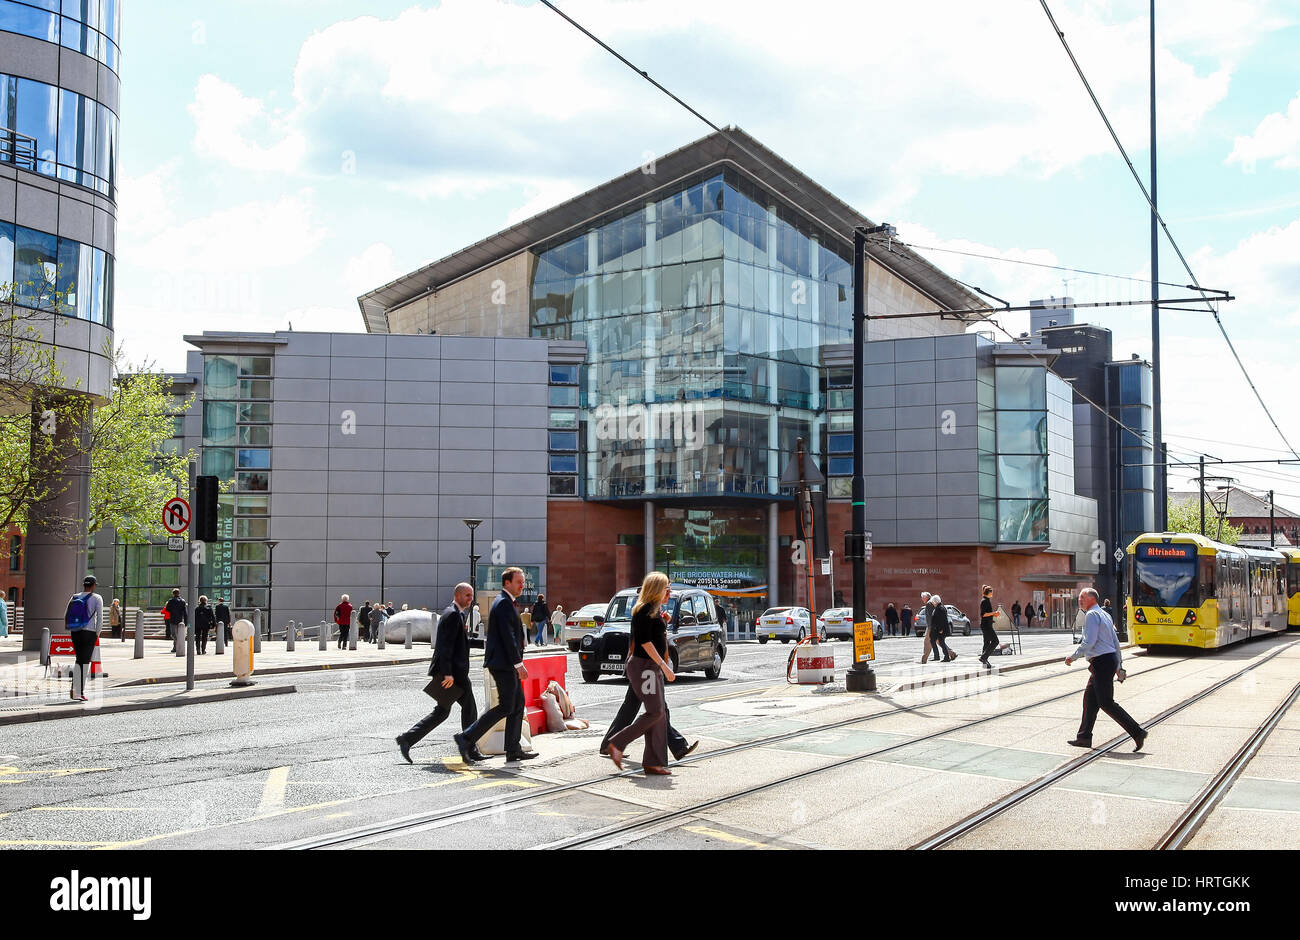 bridgewater-hall-barbirolli-square-manch